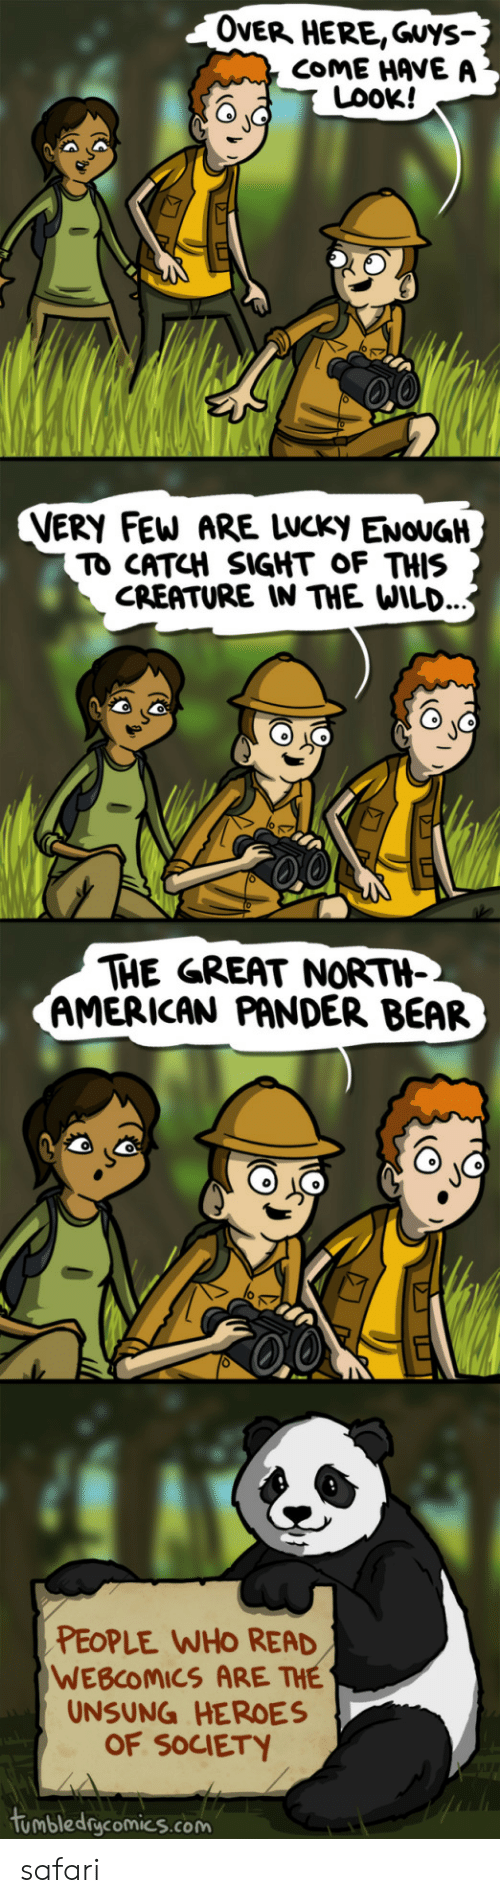 Safari: OveR HERE,Guys-  COME HAVE A  LOOK!  VERY FEW ARE LWCKy ENOUGH  TO CATCH SIGHT OF THIS  CREATURE IN THE WILD.  THE GREAT NORTH-  AMERICAN PANDER BEAR  PEOPLE WHO READ  WEBCOMICS ARE THE  UNSUNG HEROES  OF SOCIETY  tumbledgcomics.com safari